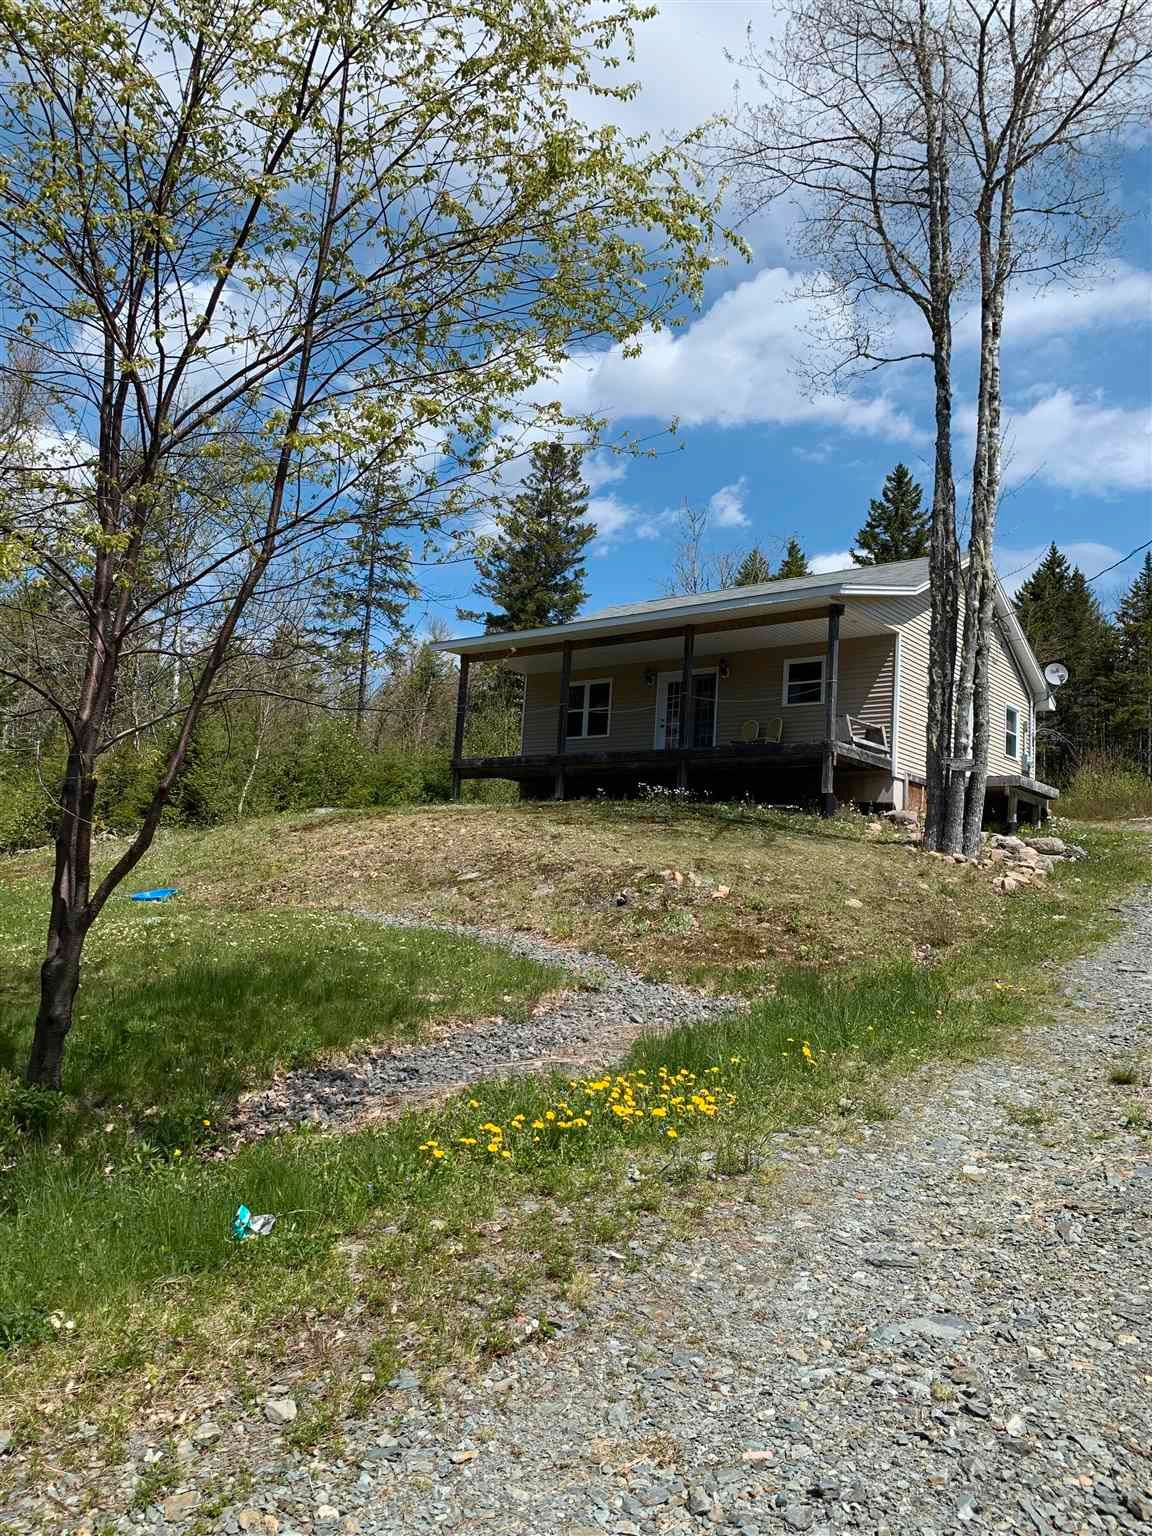 Main Photo: 276 Falkenham Road in East Dalhousie: 404-Kings County Residential for sale (Annapolis Valley)  : MLS®# 202111989